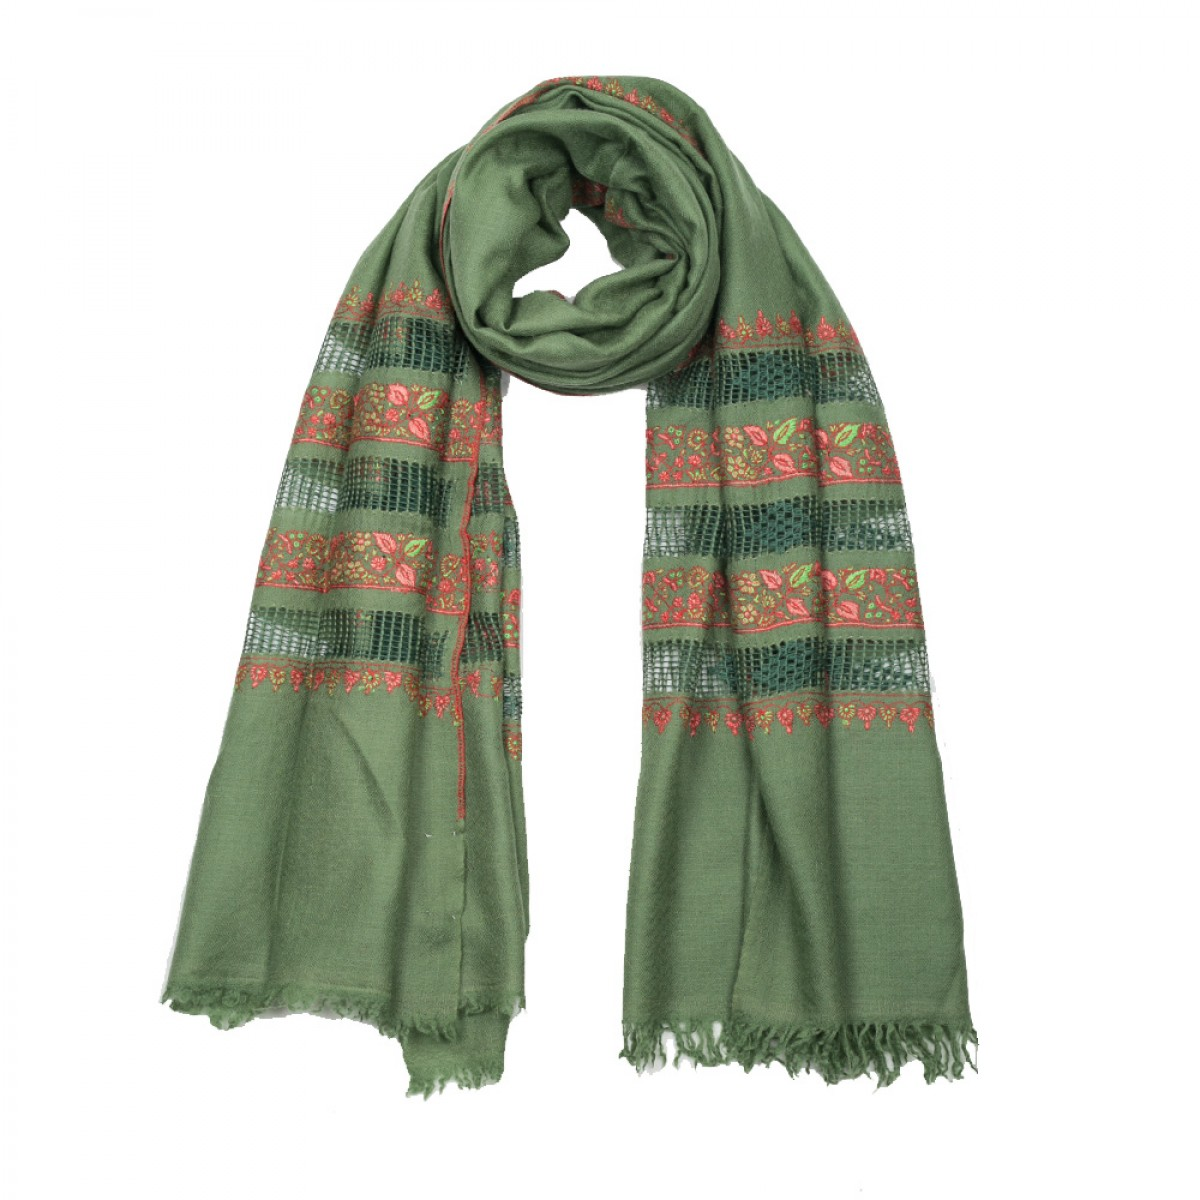 Embroidered Pashmina Stole - Green